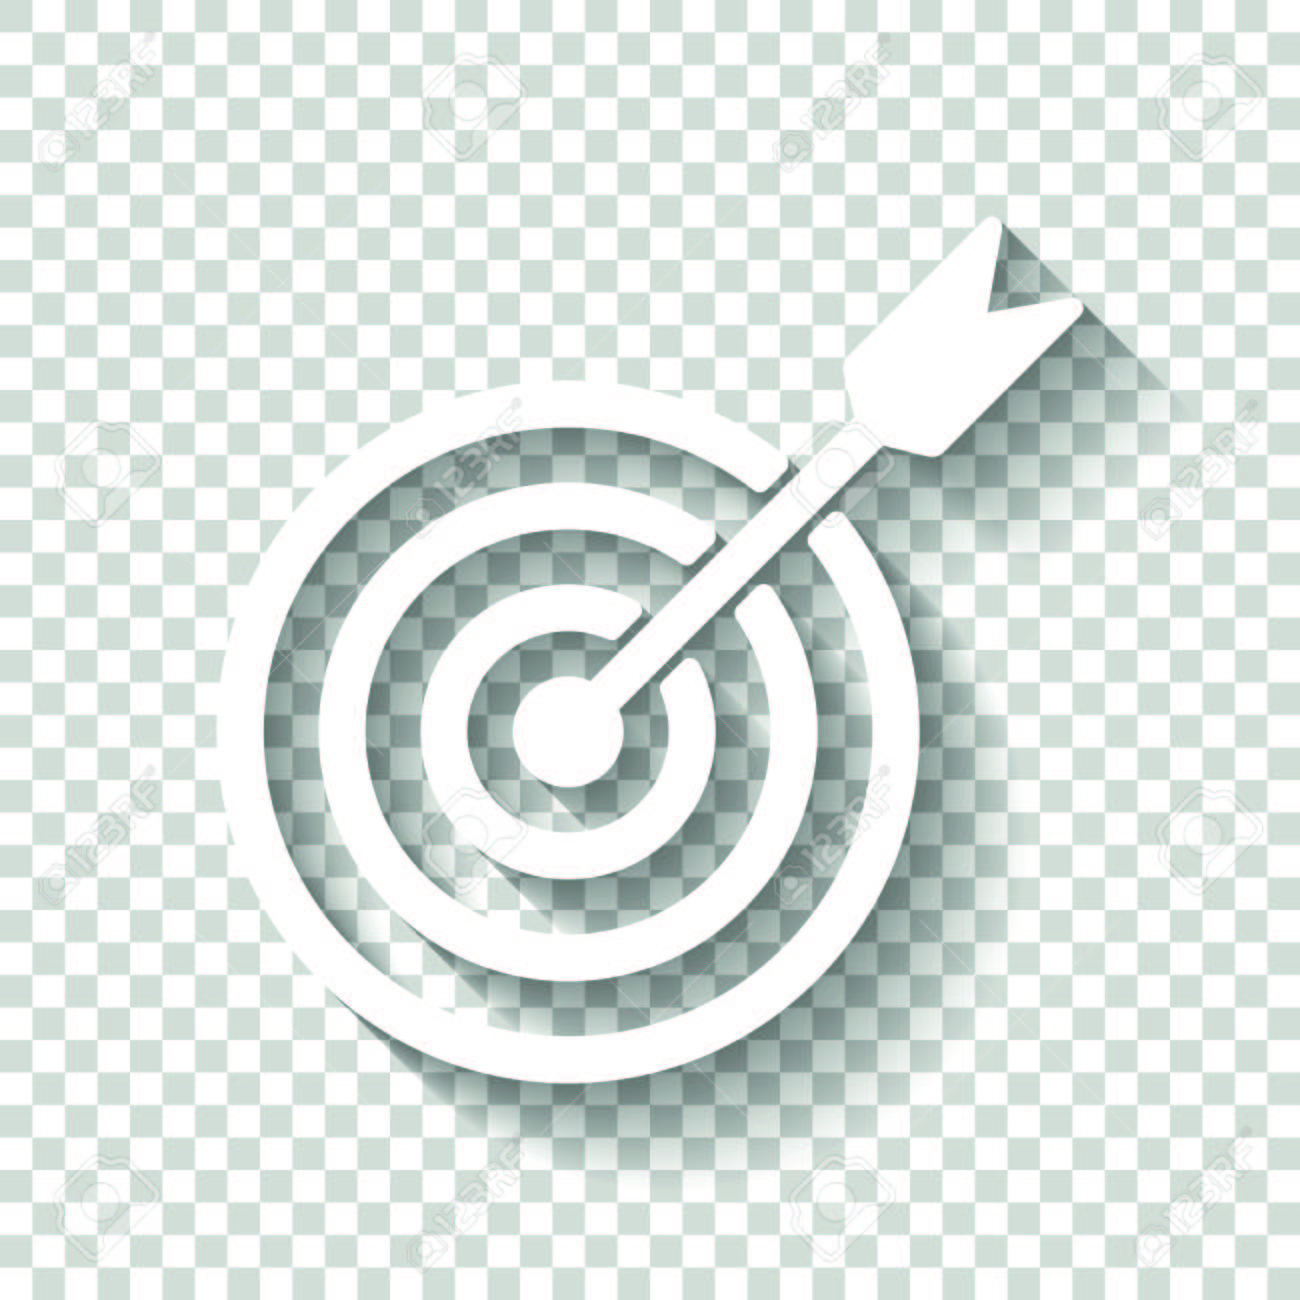 Target Icon White Icon With Shadow On Transparent Background